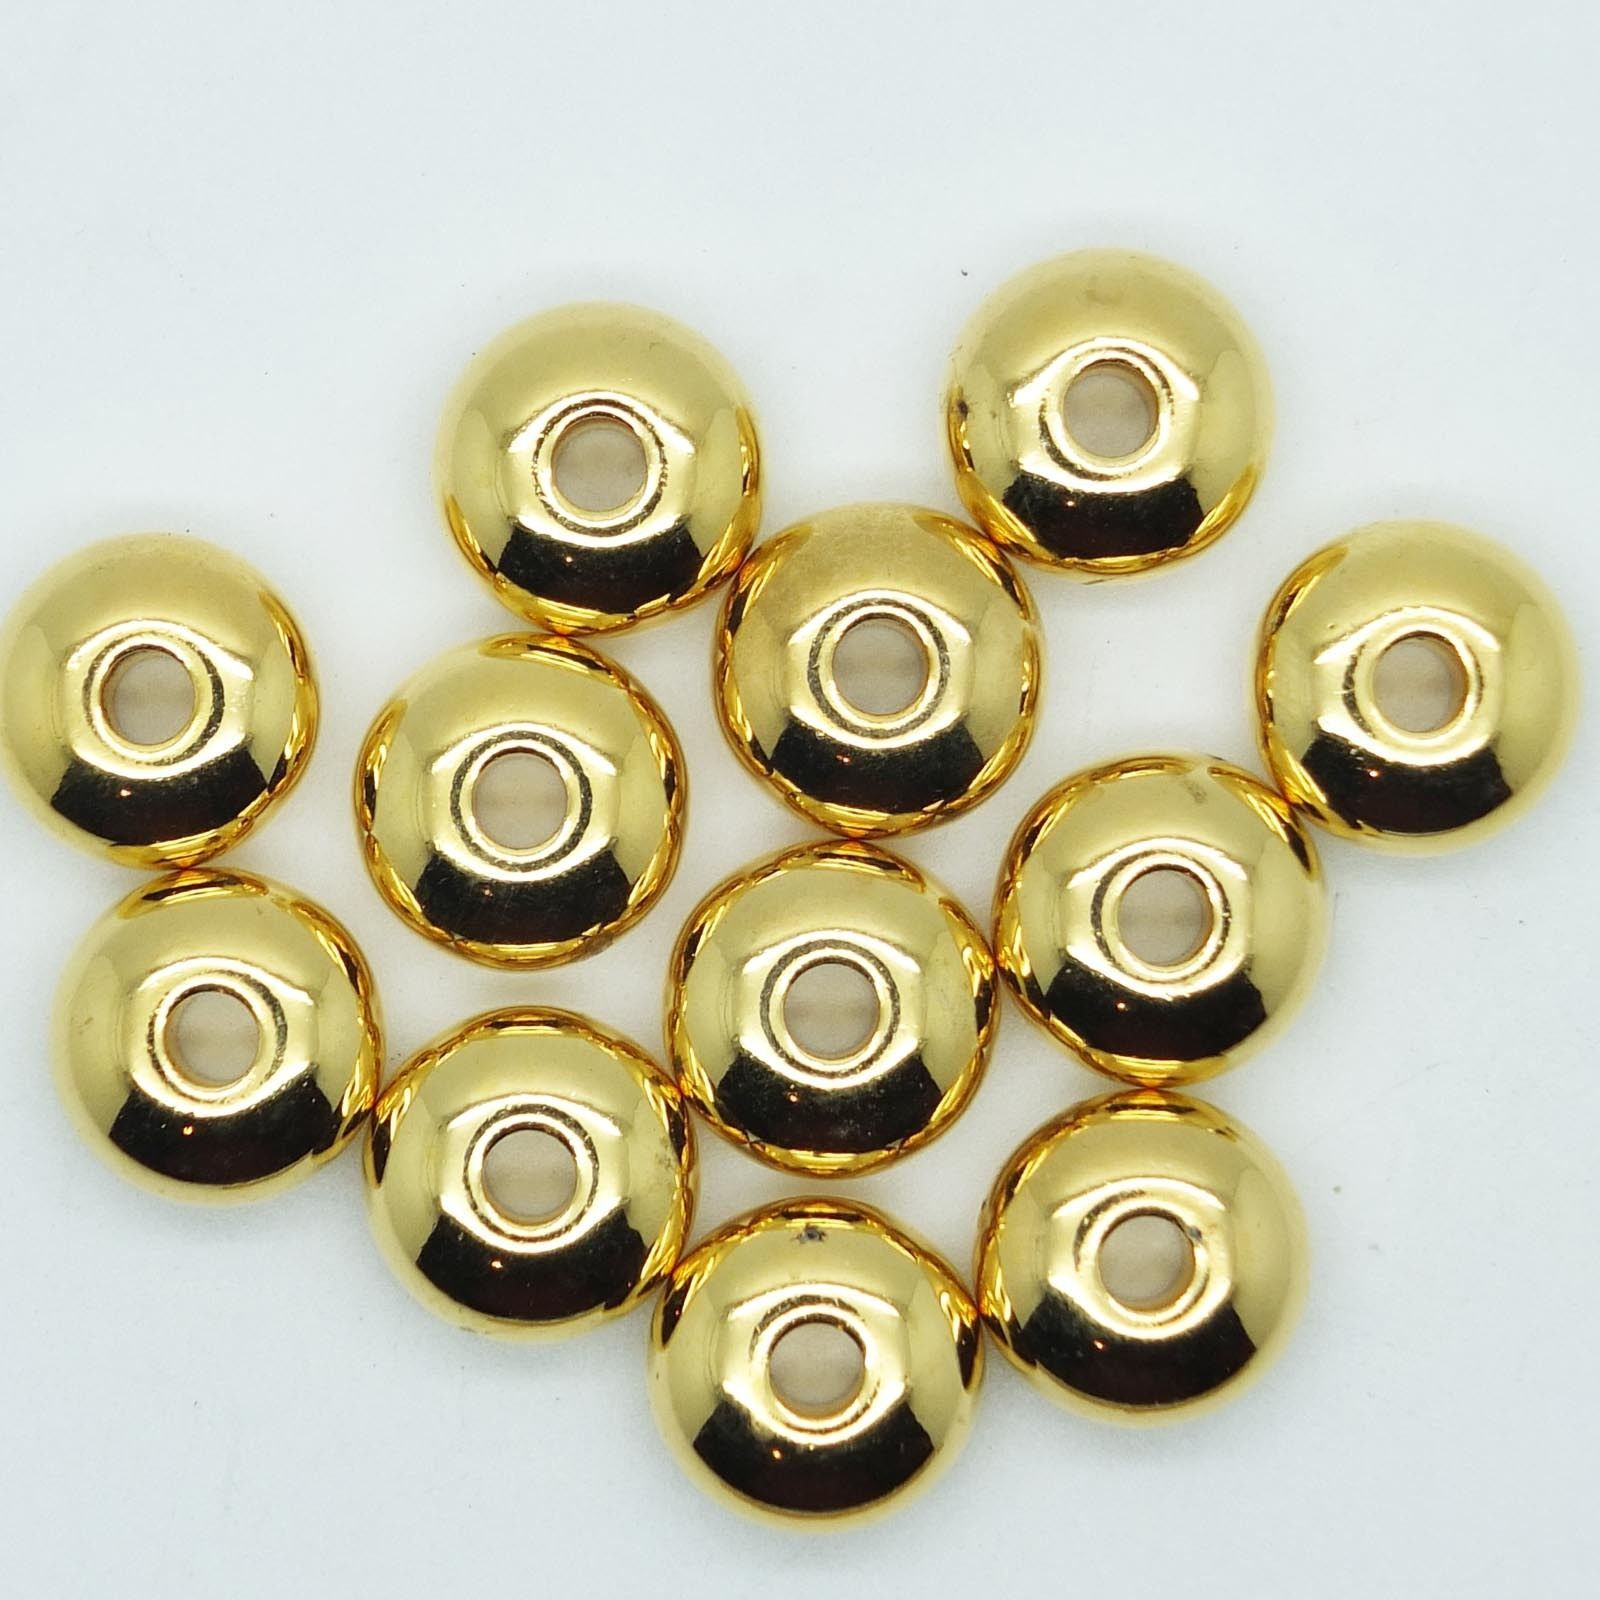 Primary image for Cushion Donut 14x8mm Metalized Large Hole Beads Bright Gold Finish pk/12